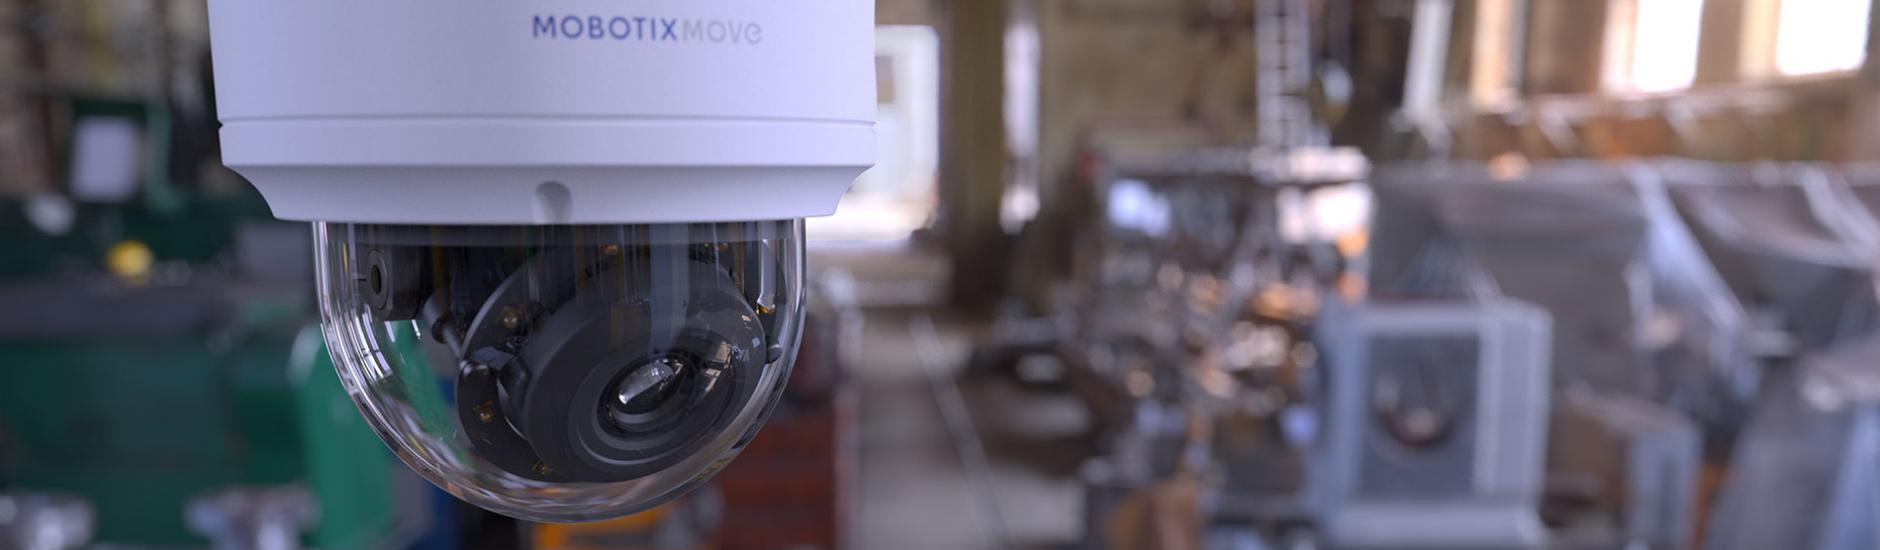 MOBOTIX MOVE: Centrally Managed ONVIF Cameras